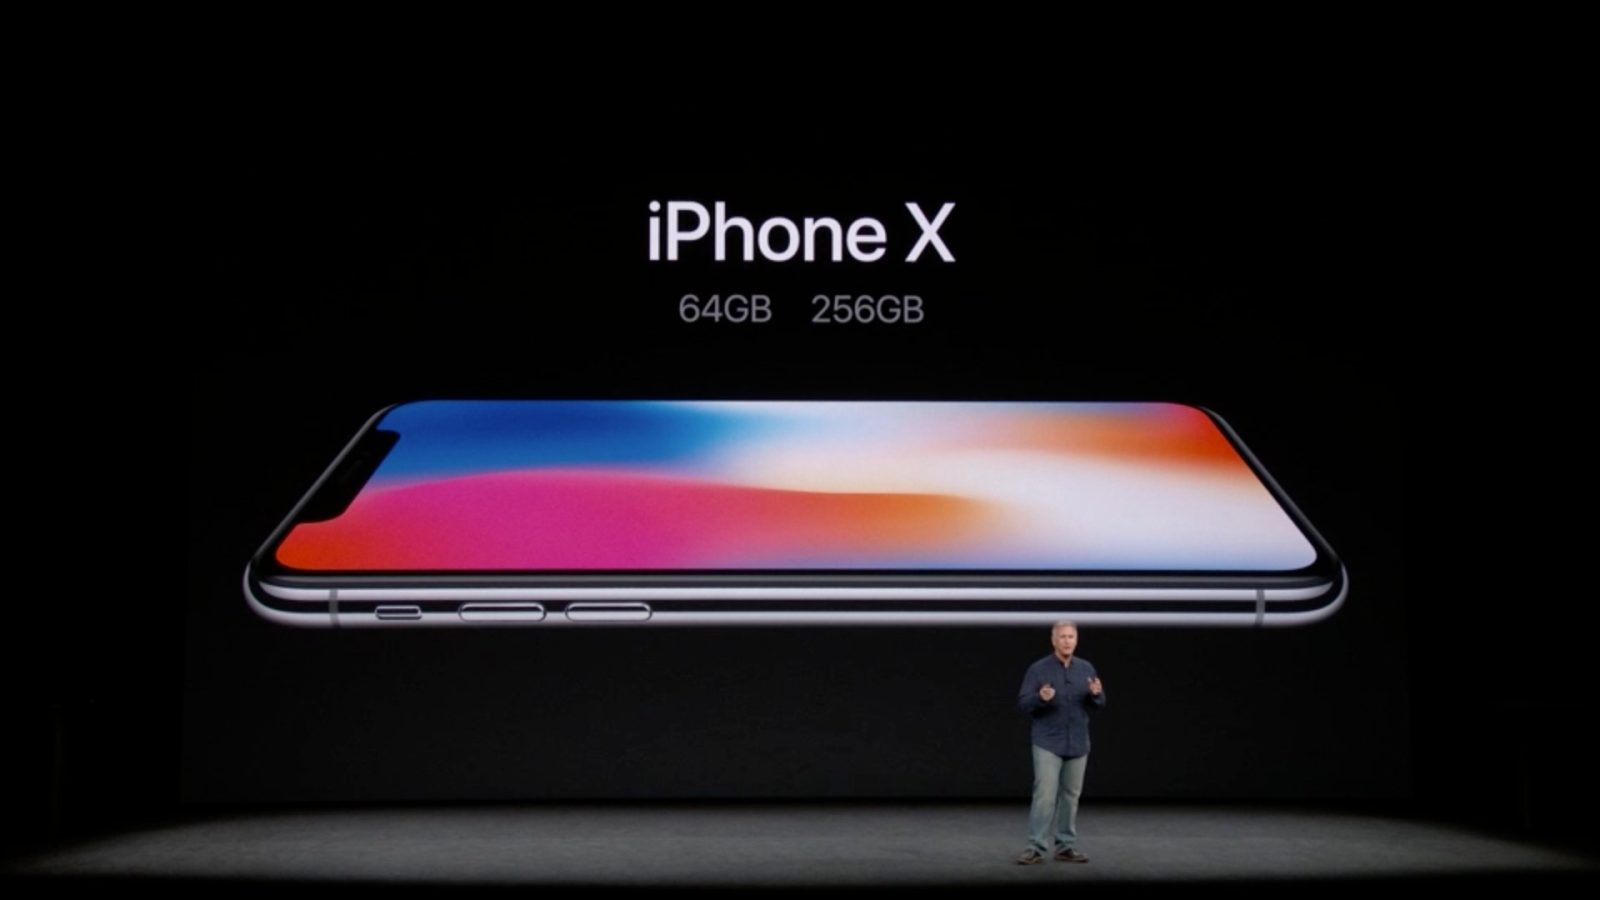 iphone x technikfaultier